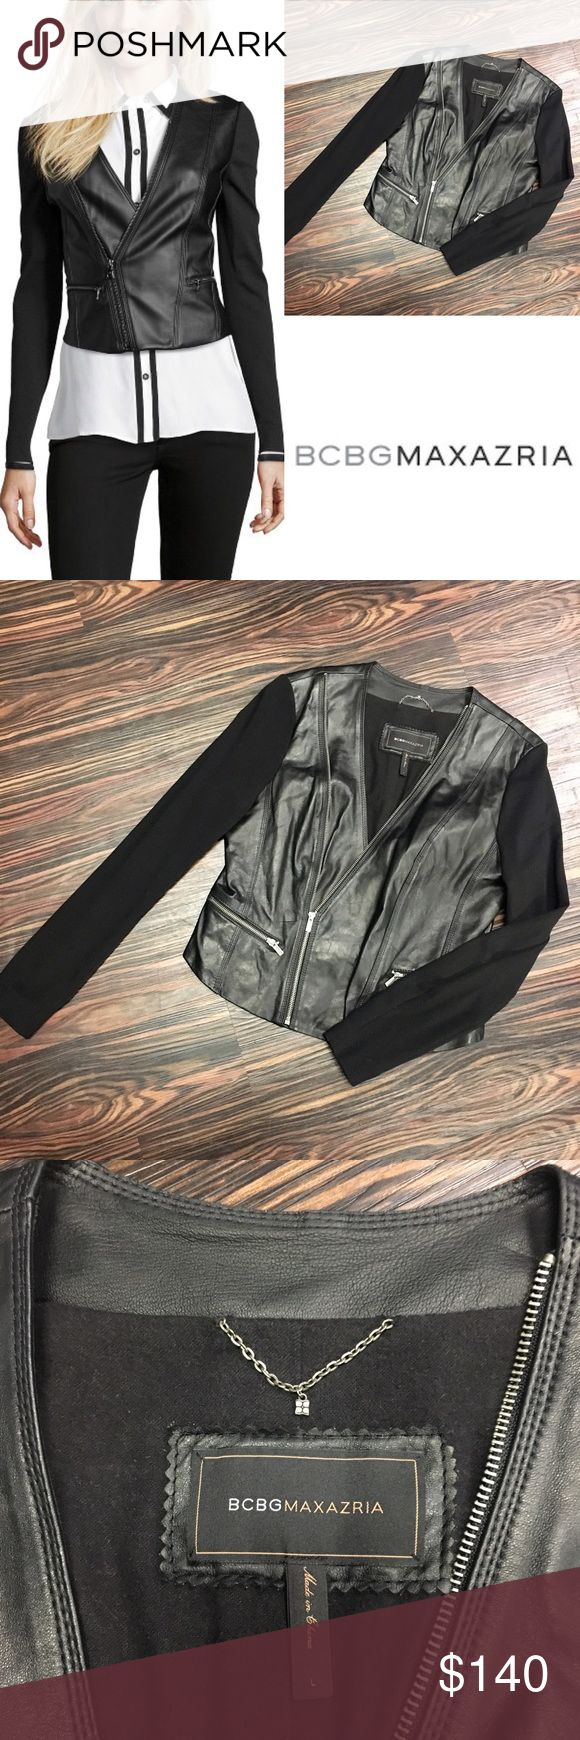 (Make an offer) BCBGMAXAZRIA LEATHER jacket. Worn a handful of times. Jacket bodice is 100% leather. The rayon/nylon ponte sleeves make it extra comfortable with added style. Zipper detail with two pockets. Very edgy, fun and cool jacket! BCBGMaxAzria Jackets & Coats